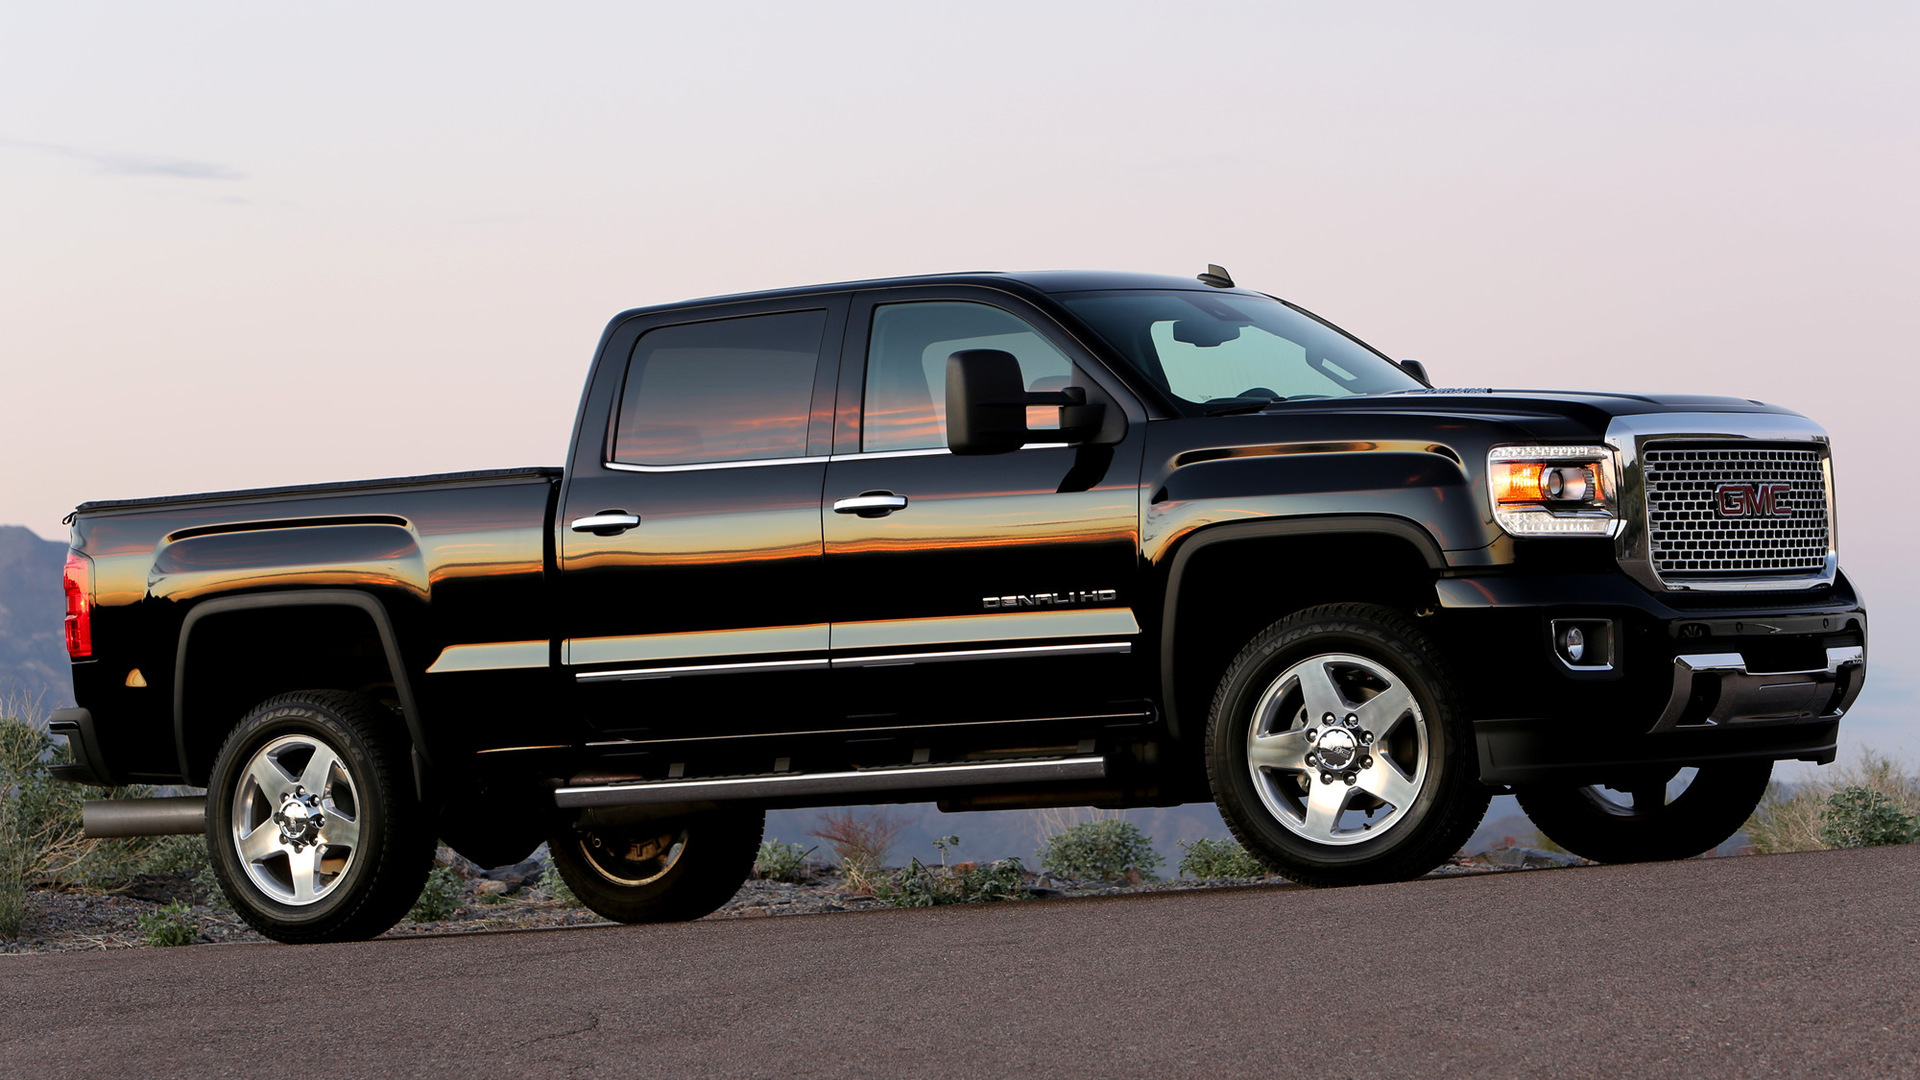 2015 GMC Sierra Denali 2500 HD Crew Cab - Wallpapers and ...